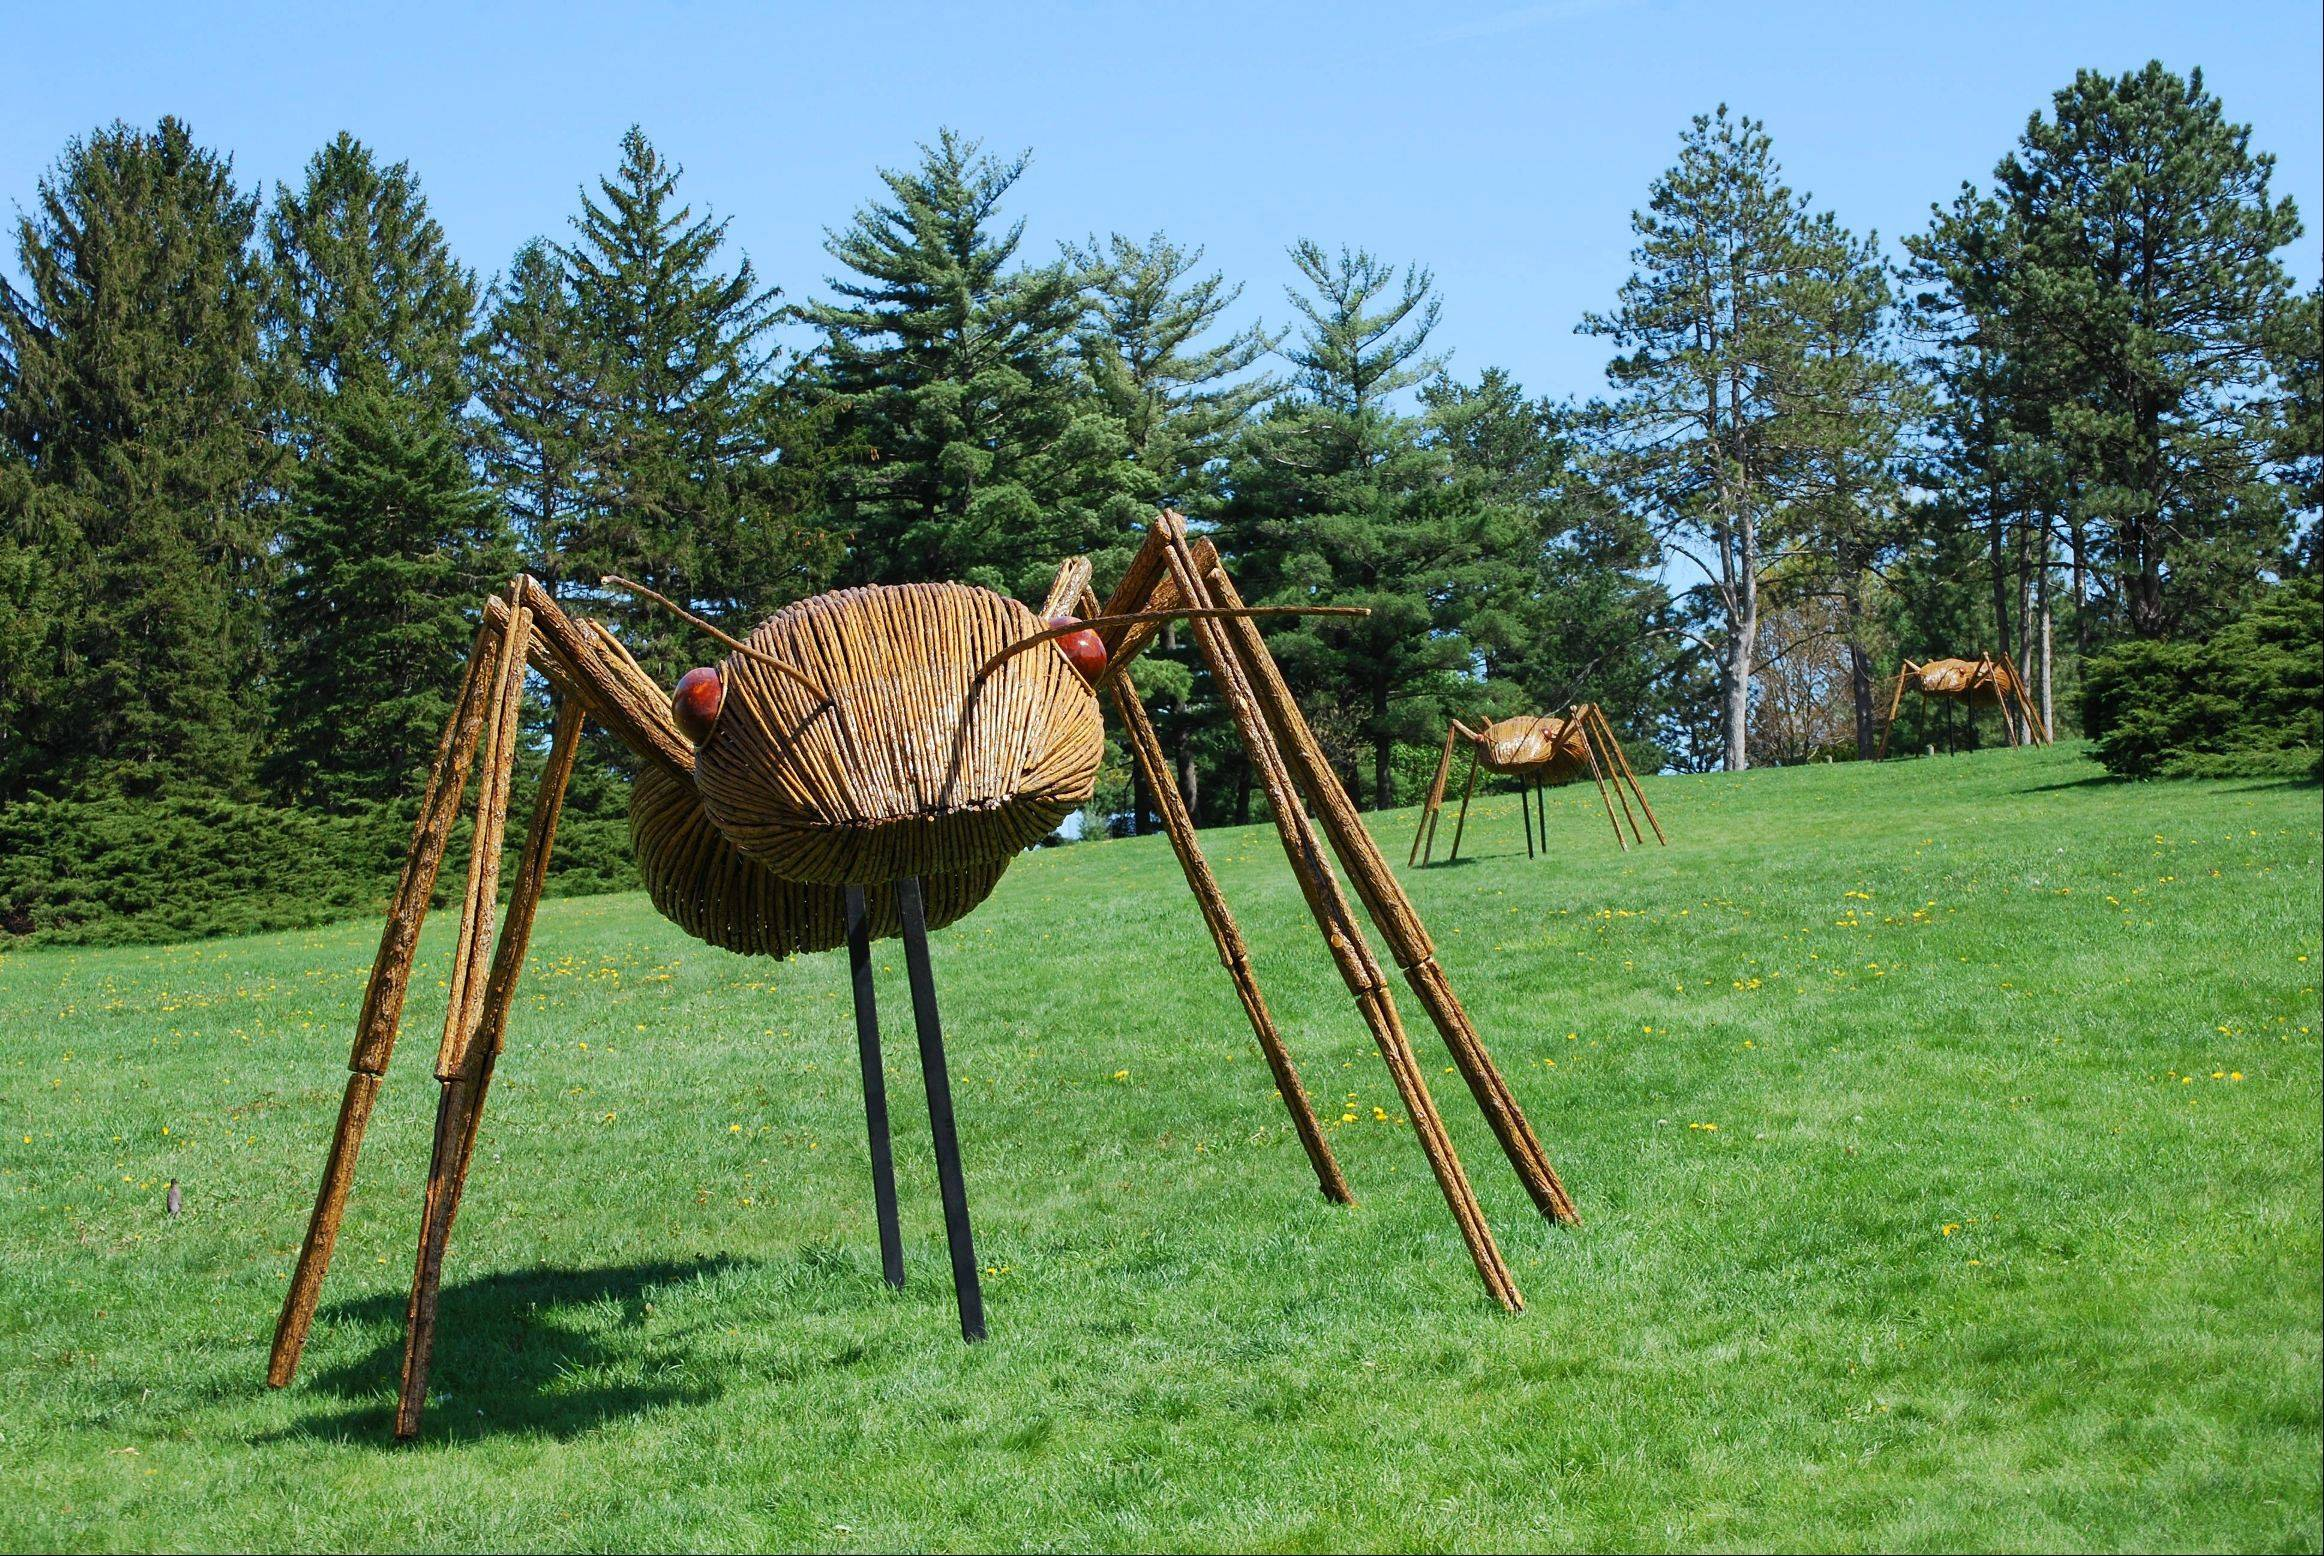 Shirley Wilson of Glen Ellyn took this picture of giant ants at the Morton Arboretum in Lisle. The ants are part of a sculpture exhibit at the outdoor museum.